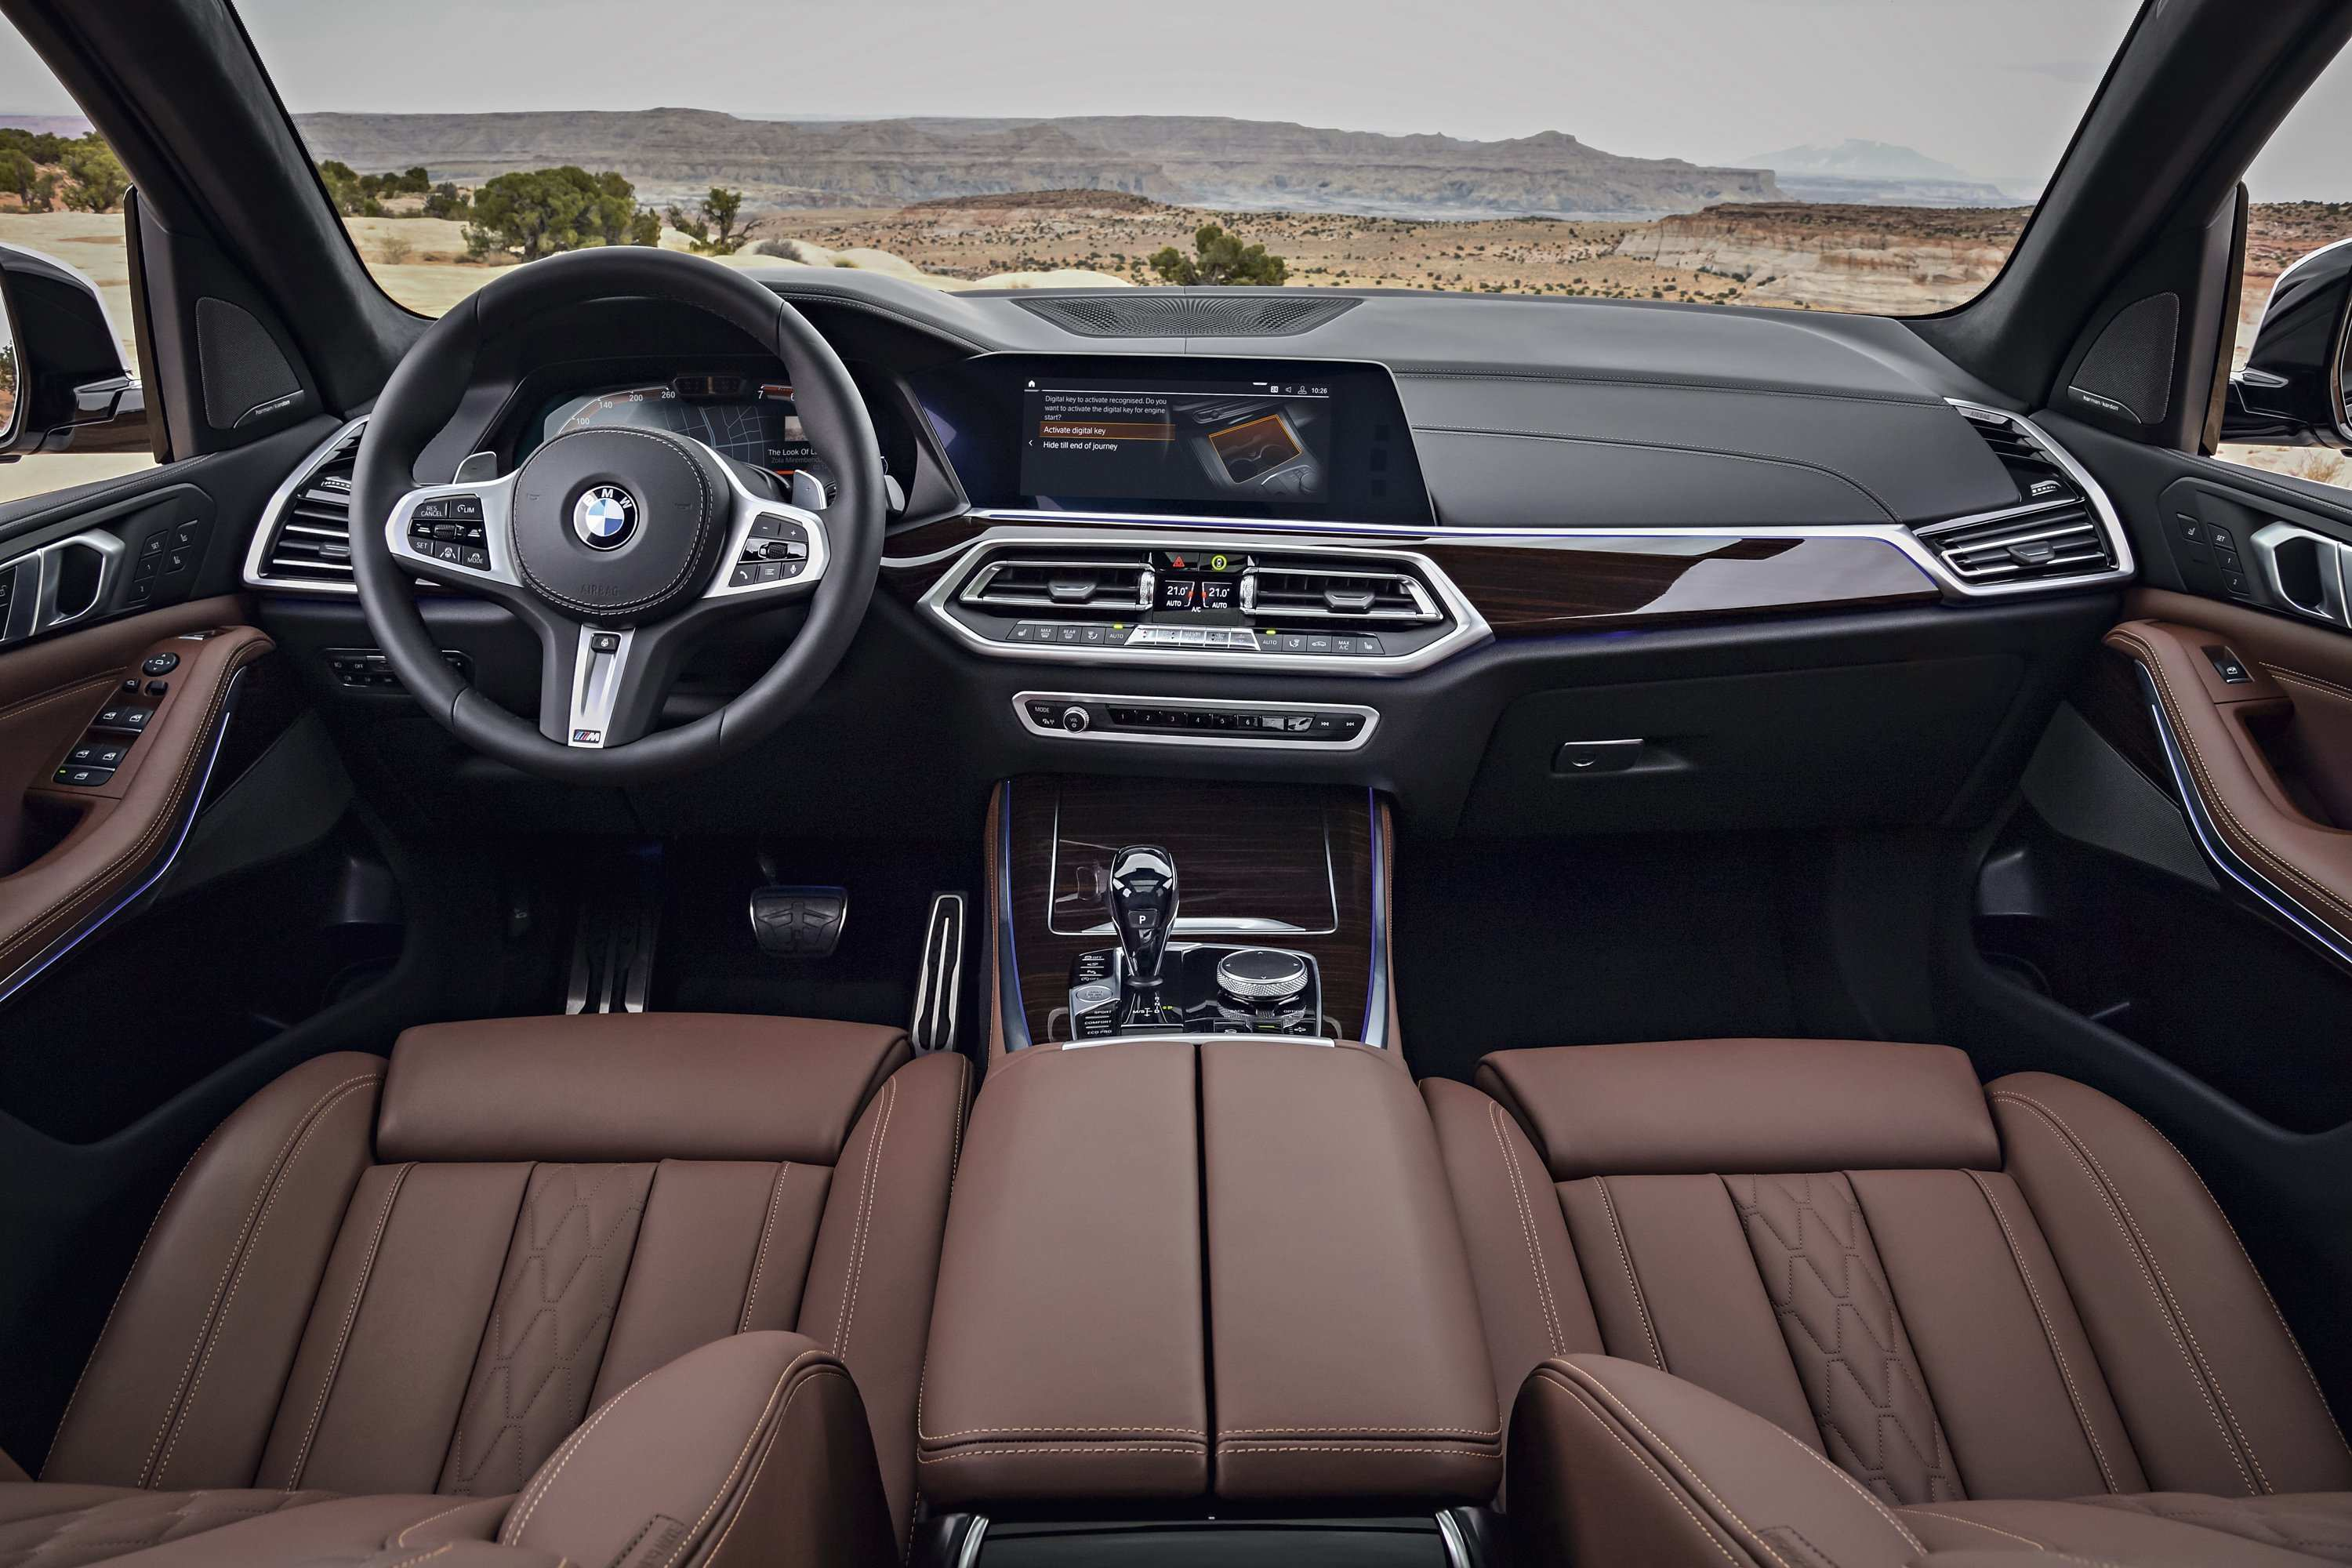 87 Best Review The 2019 Bmw Dashboard Specs And Review Performance and New Engine with The 2019 Bmw Dashboard Specs And Review